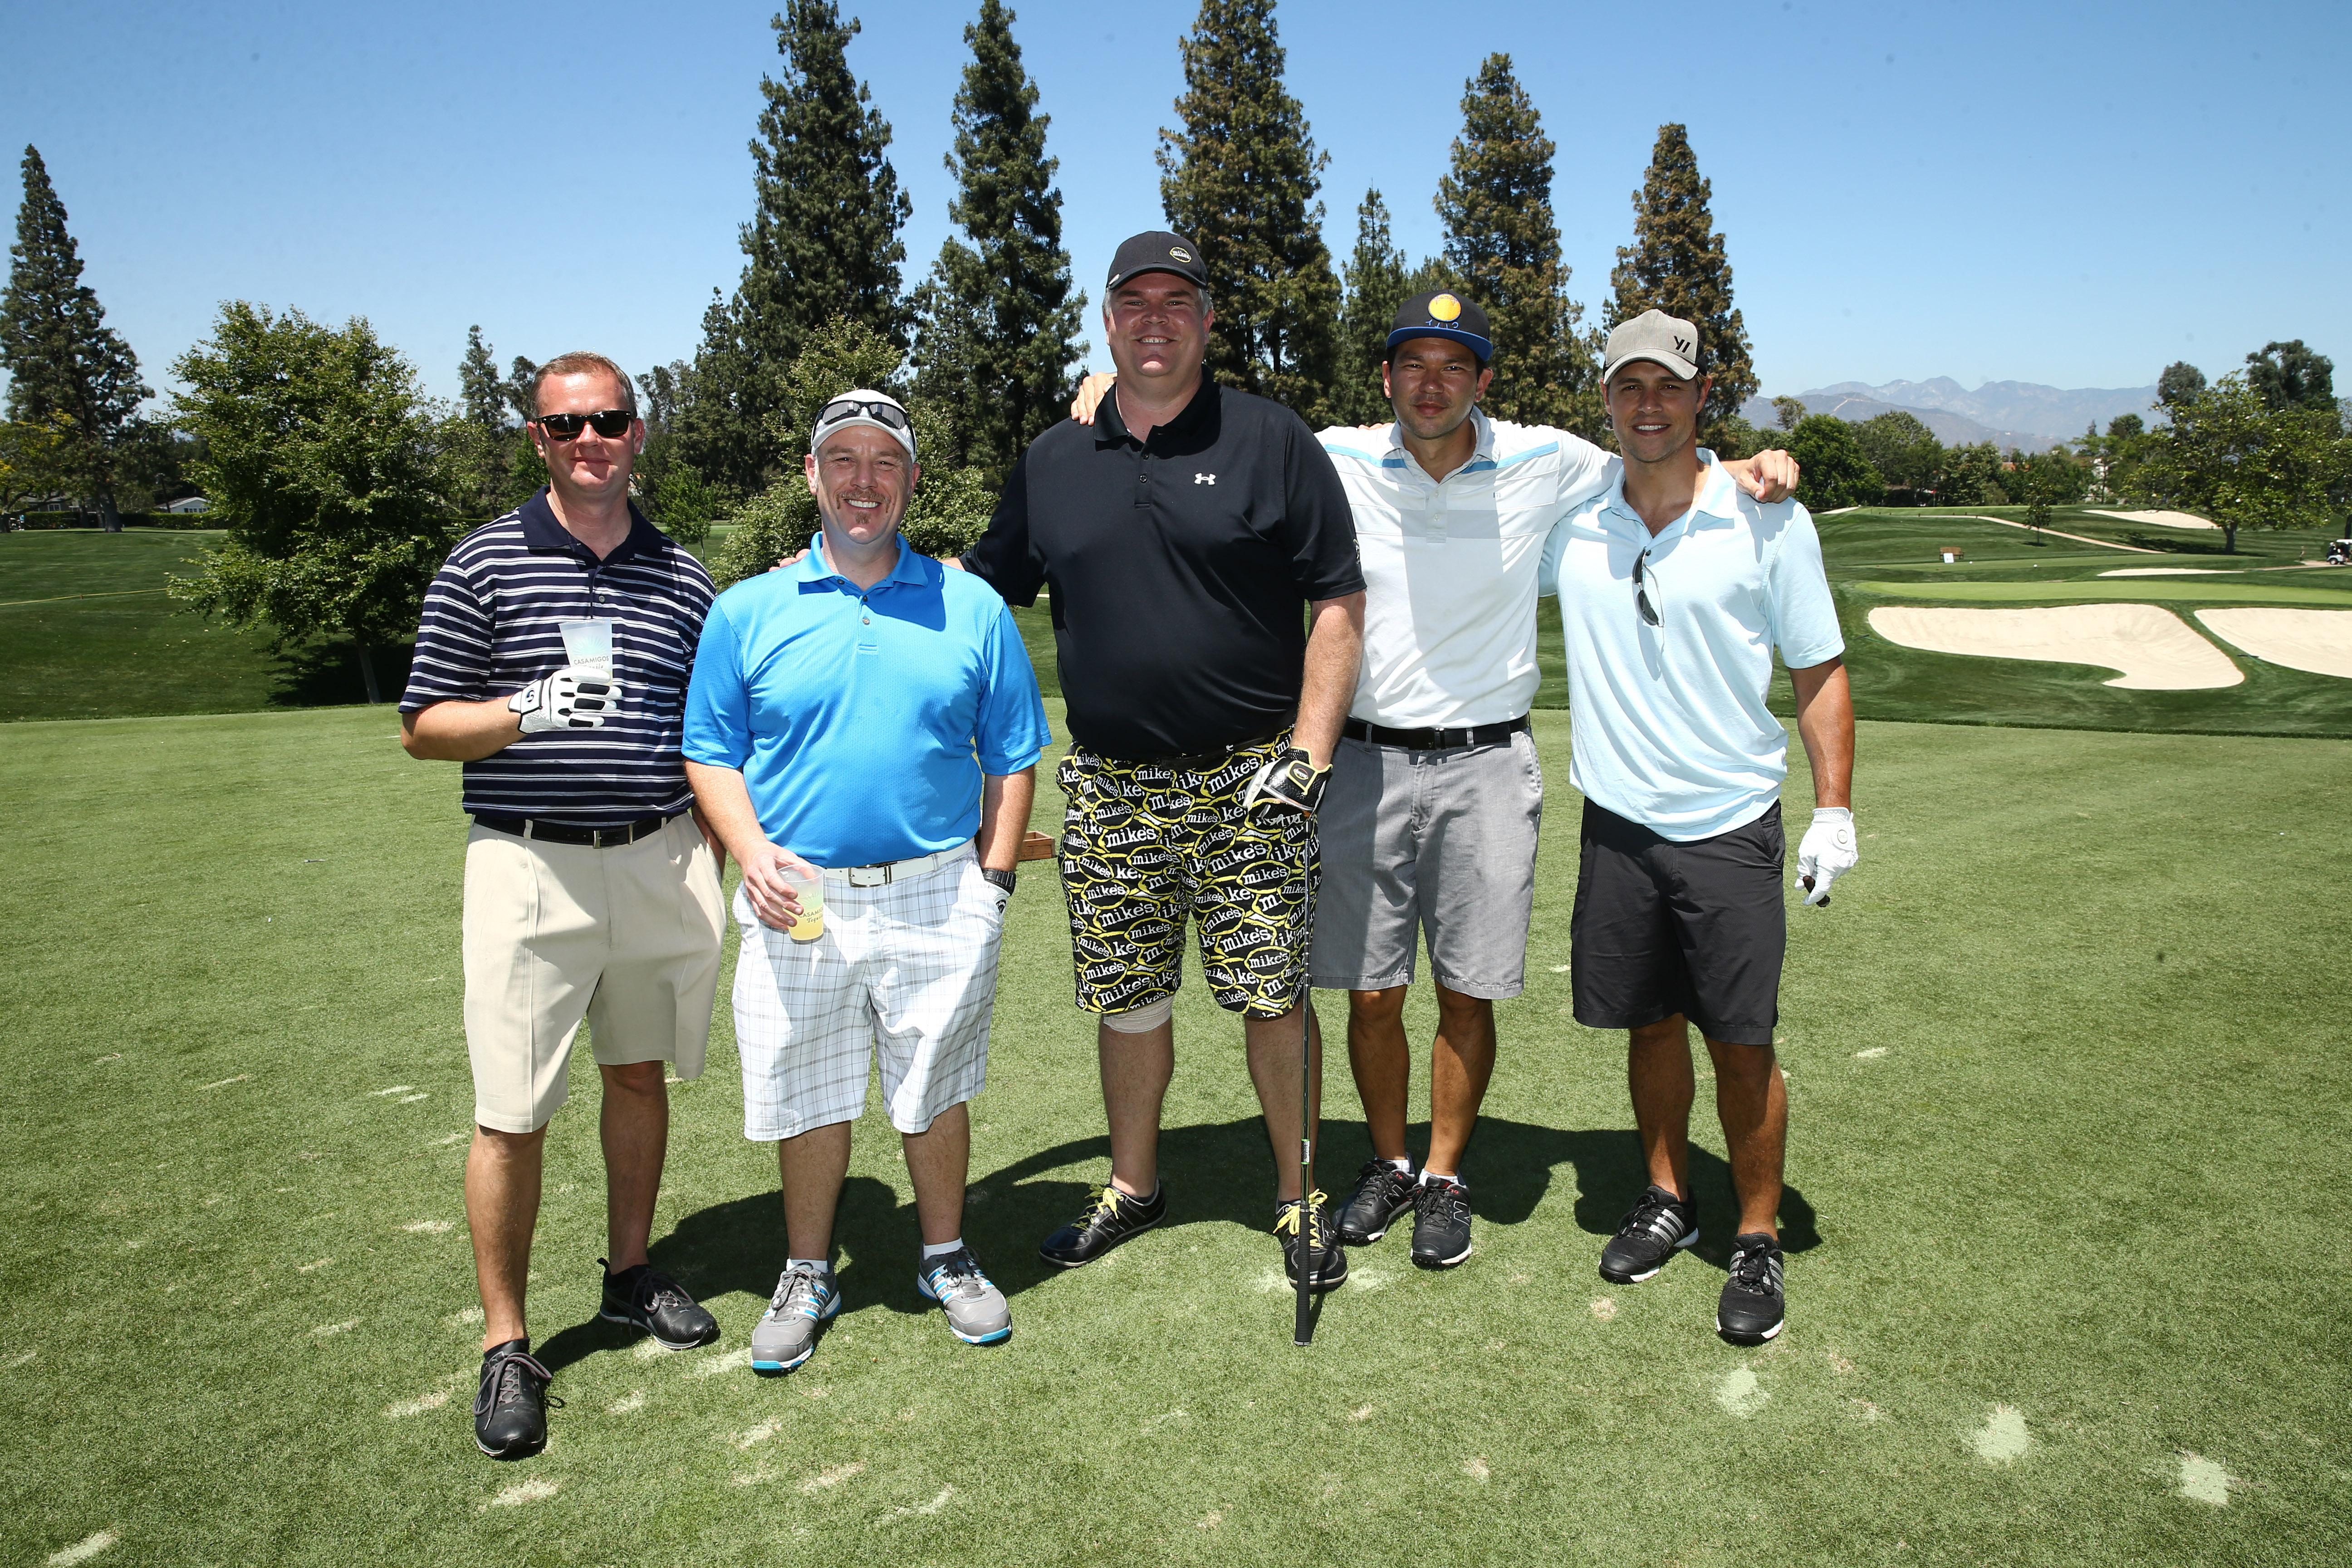 Jonathan St. Clair, Greg Brittsan, James Thwing, Clarke Miyasaki and Sam Page play at the Screen Actors Guild Foundation's 6th Annual Los Angeles Golf Classic on June 8, 2015 in Burbank, California. (Photo by Mark Davis/Getty Images for The Screen Actors Guild Foundation)